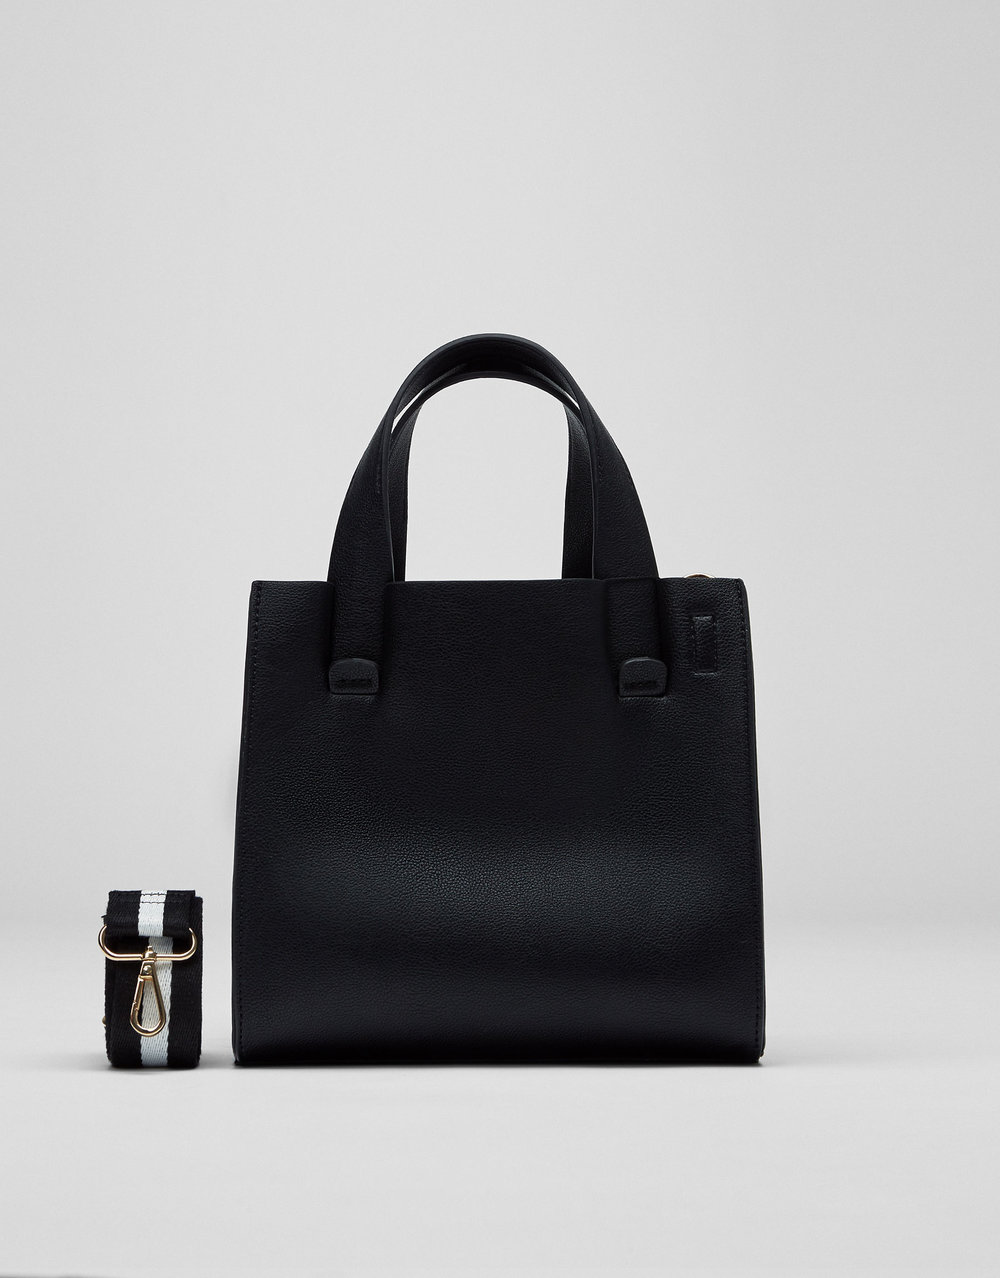 Basic Tote Bag - £19.95 Pull & Bear